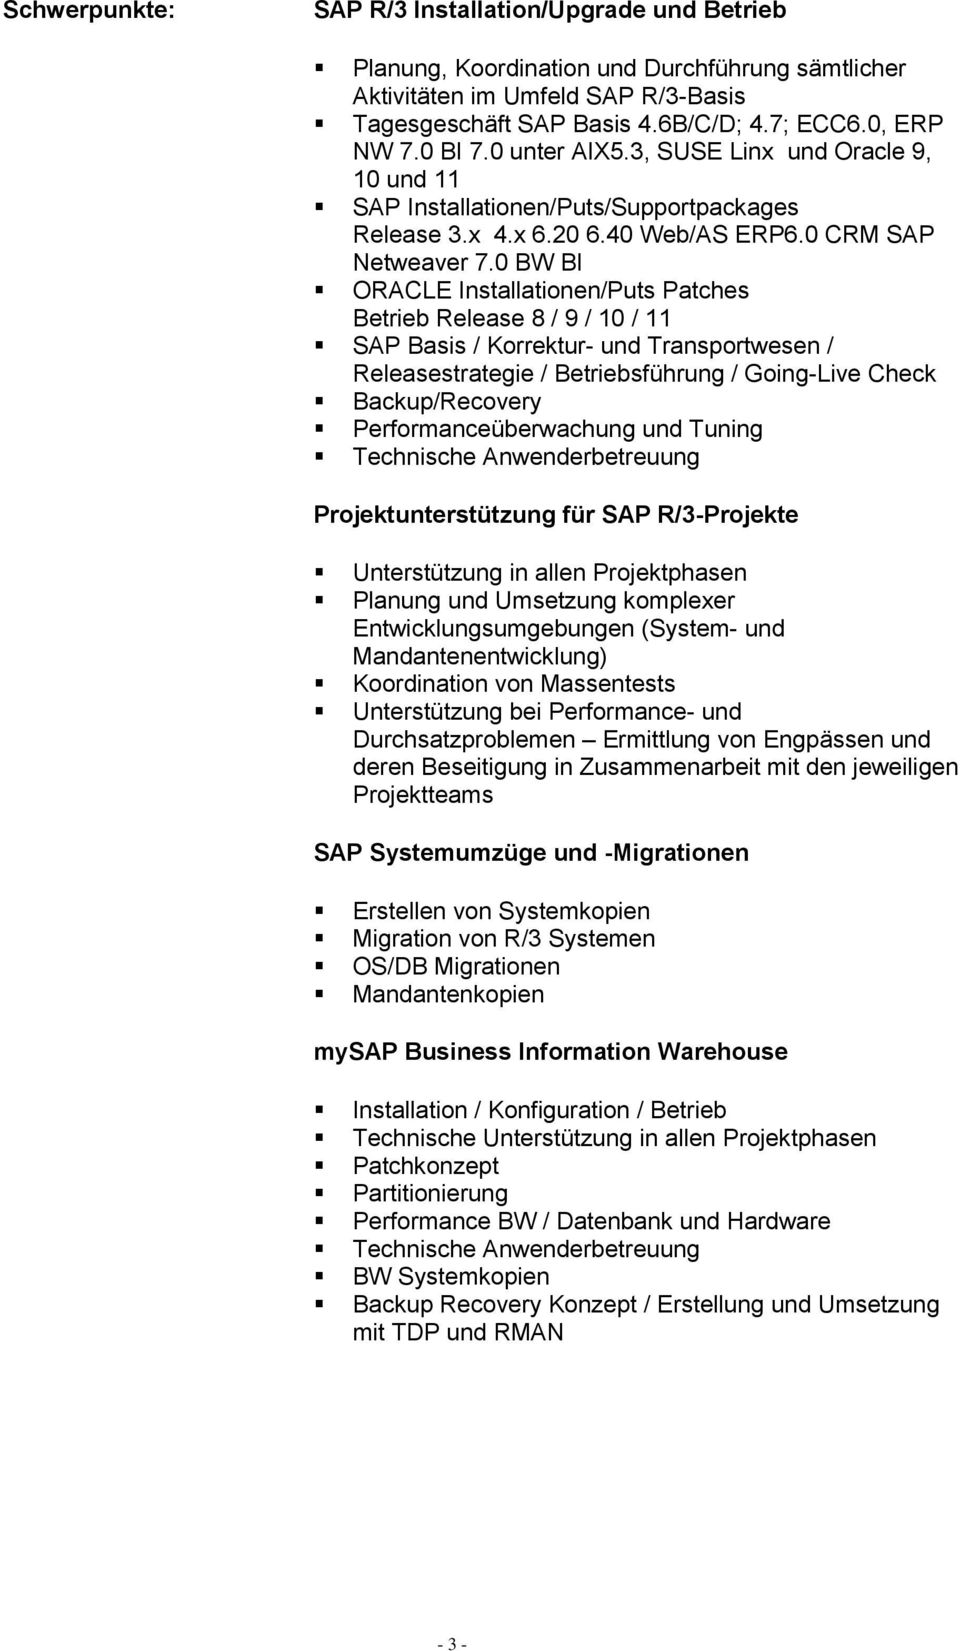 0 BW BI ORACLE Installationen/Puts Patches Betrieb Release 8 / 9 / 10 / 11 SAP Basis / Korrektur- und Transportwesen / Releasestrategie / Betriebsführung / Going-Live Check Backup/Recovery